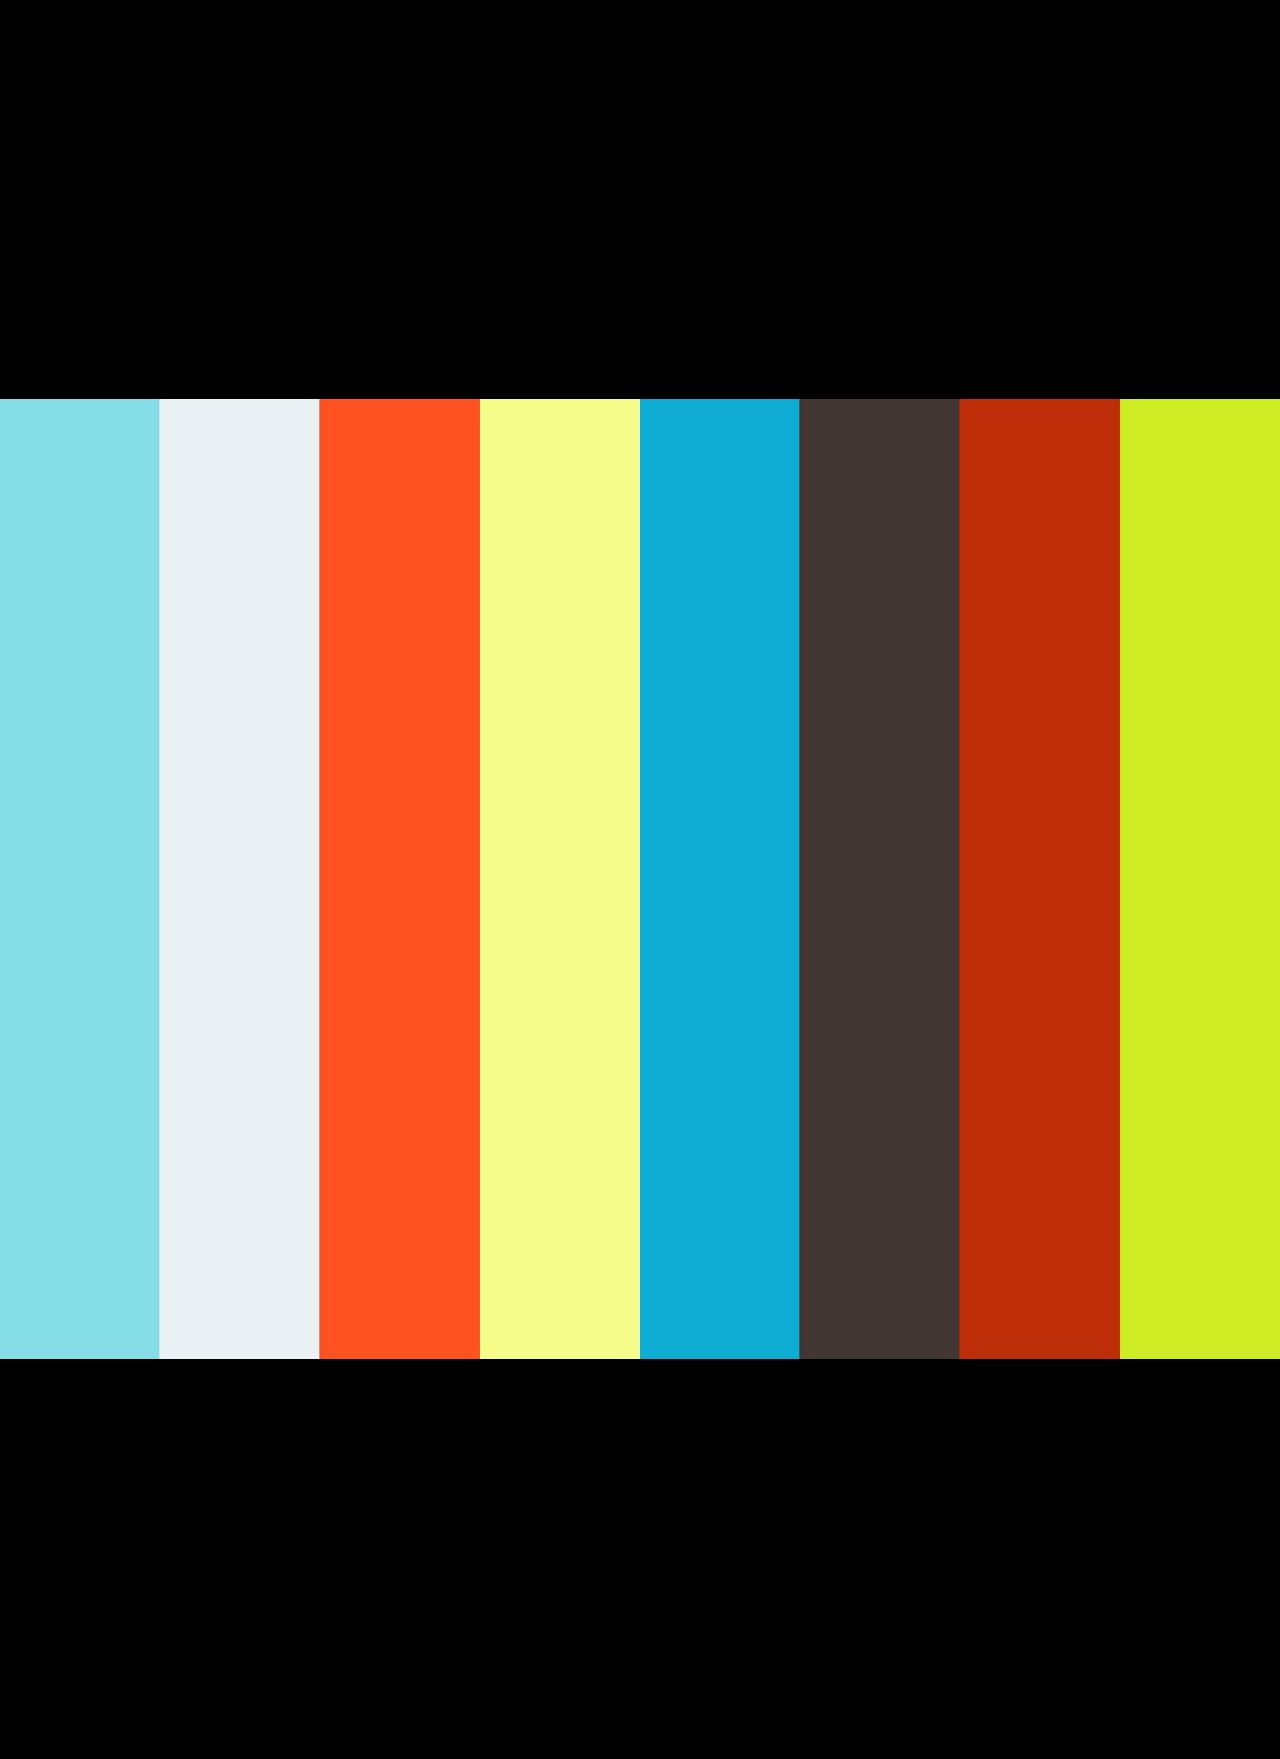 EMERGENCE EMERGENCY by Con Chrisoulis